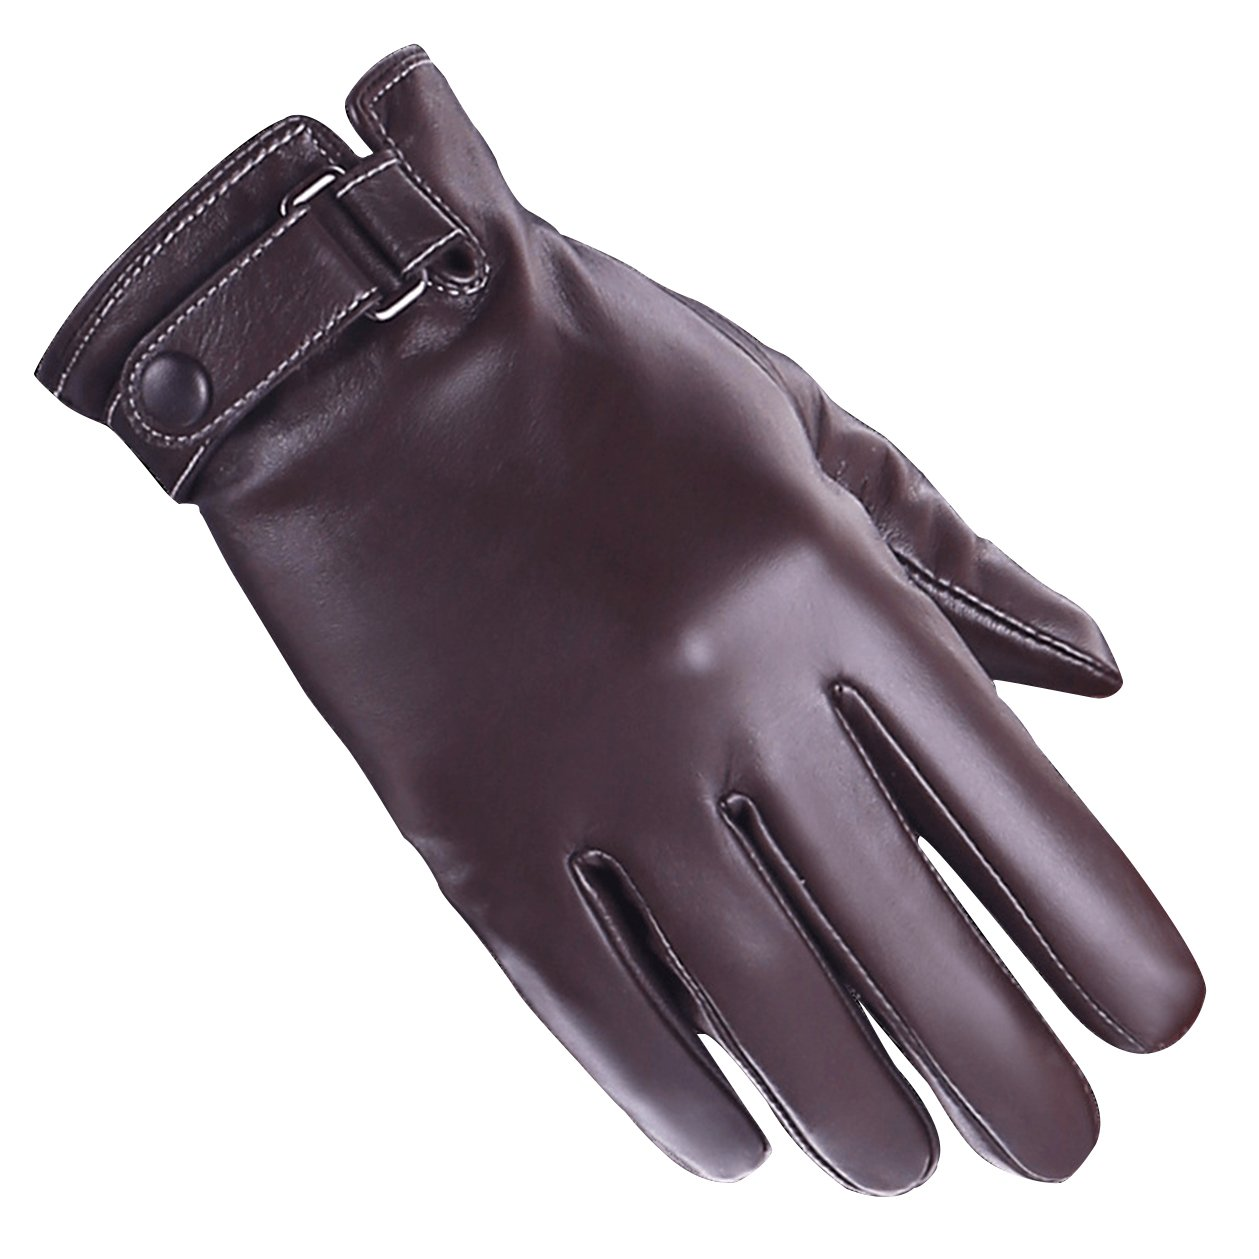 Leather gloves winter warm fashion simple business sheepskin gloves brown classic for men size XL